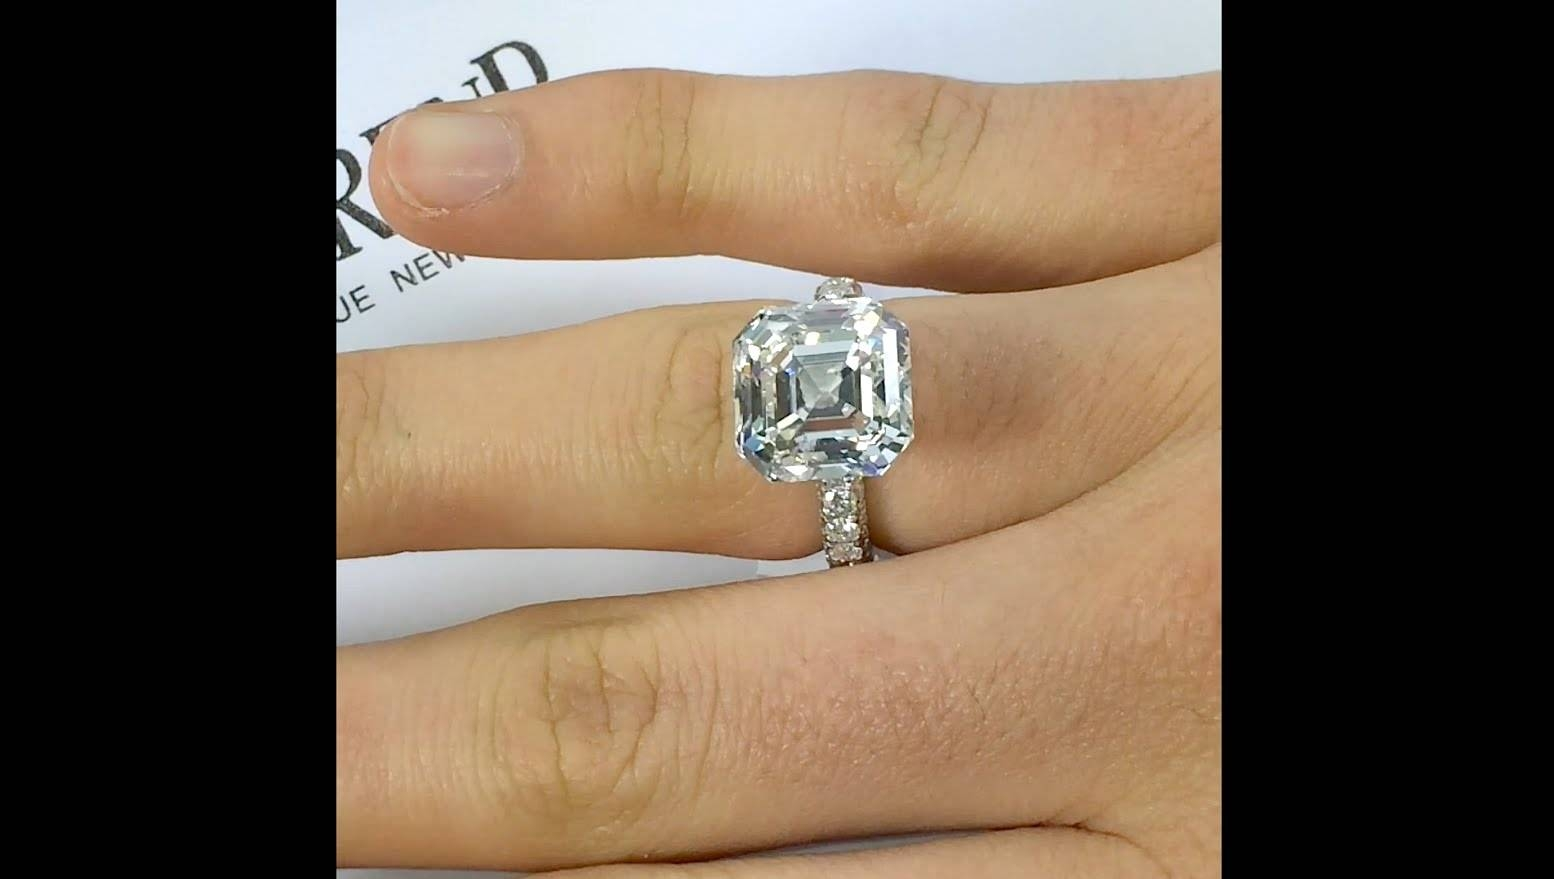 10 Carat Asscher Cut Diamond Engagement Ring – Youtube With Asscher Cut Wedding Rings (View 3 of 15)